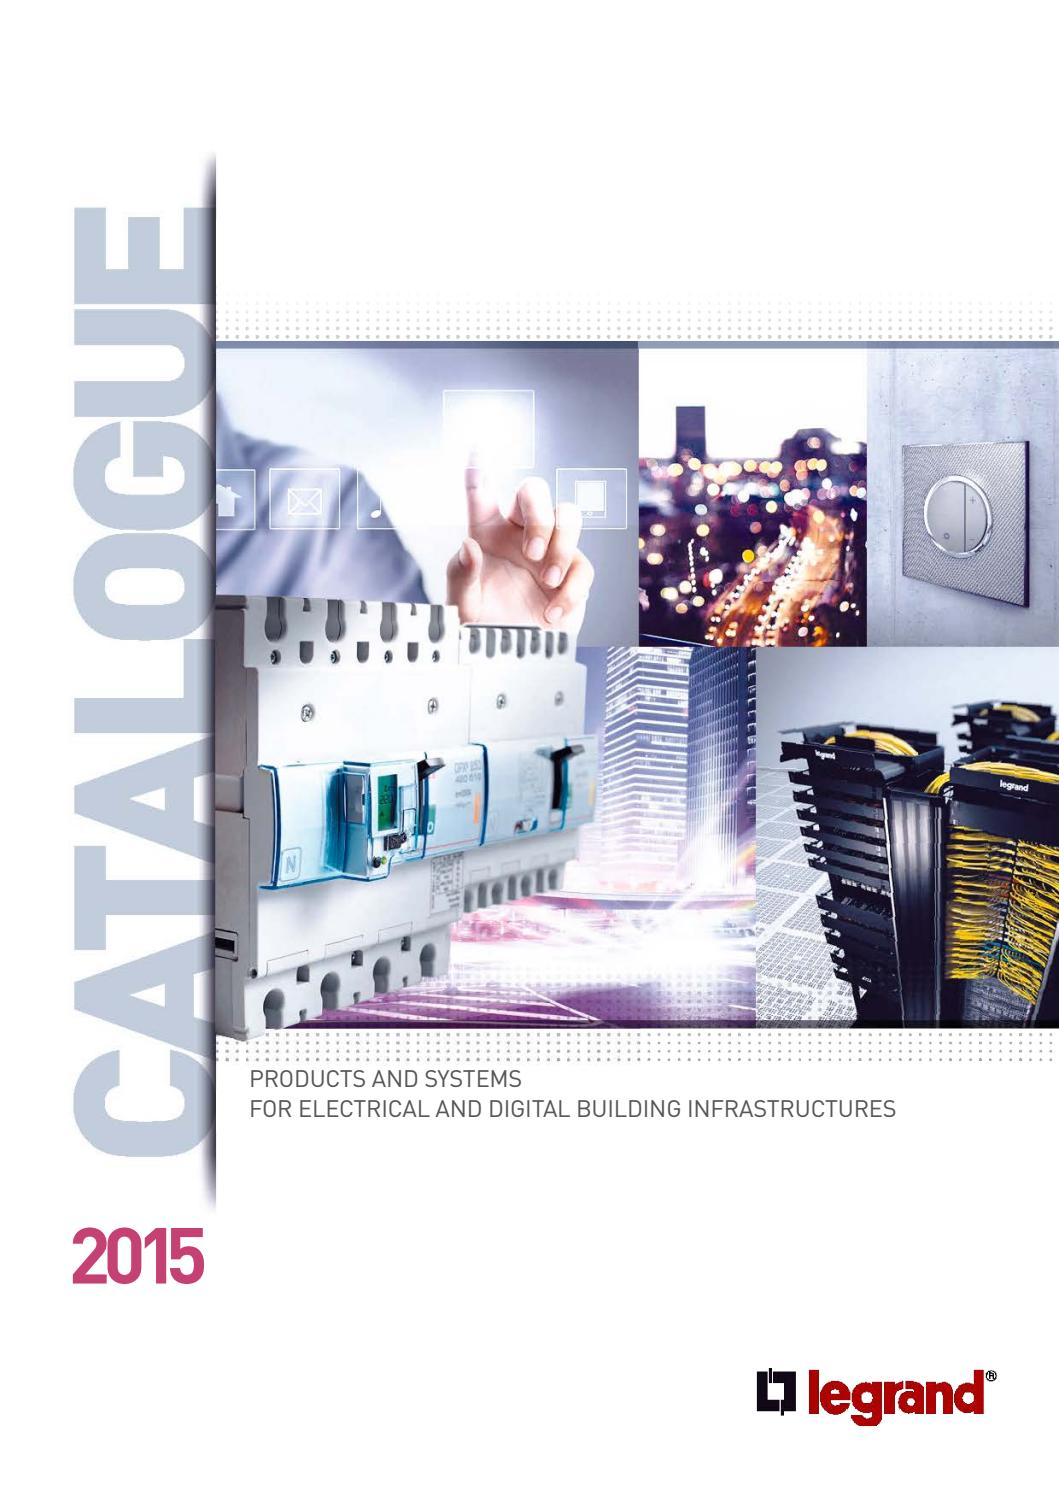 Legrand Full Range Catalogue Part 1 By Led World Issuu High Performance Power Over Ethernet Injector